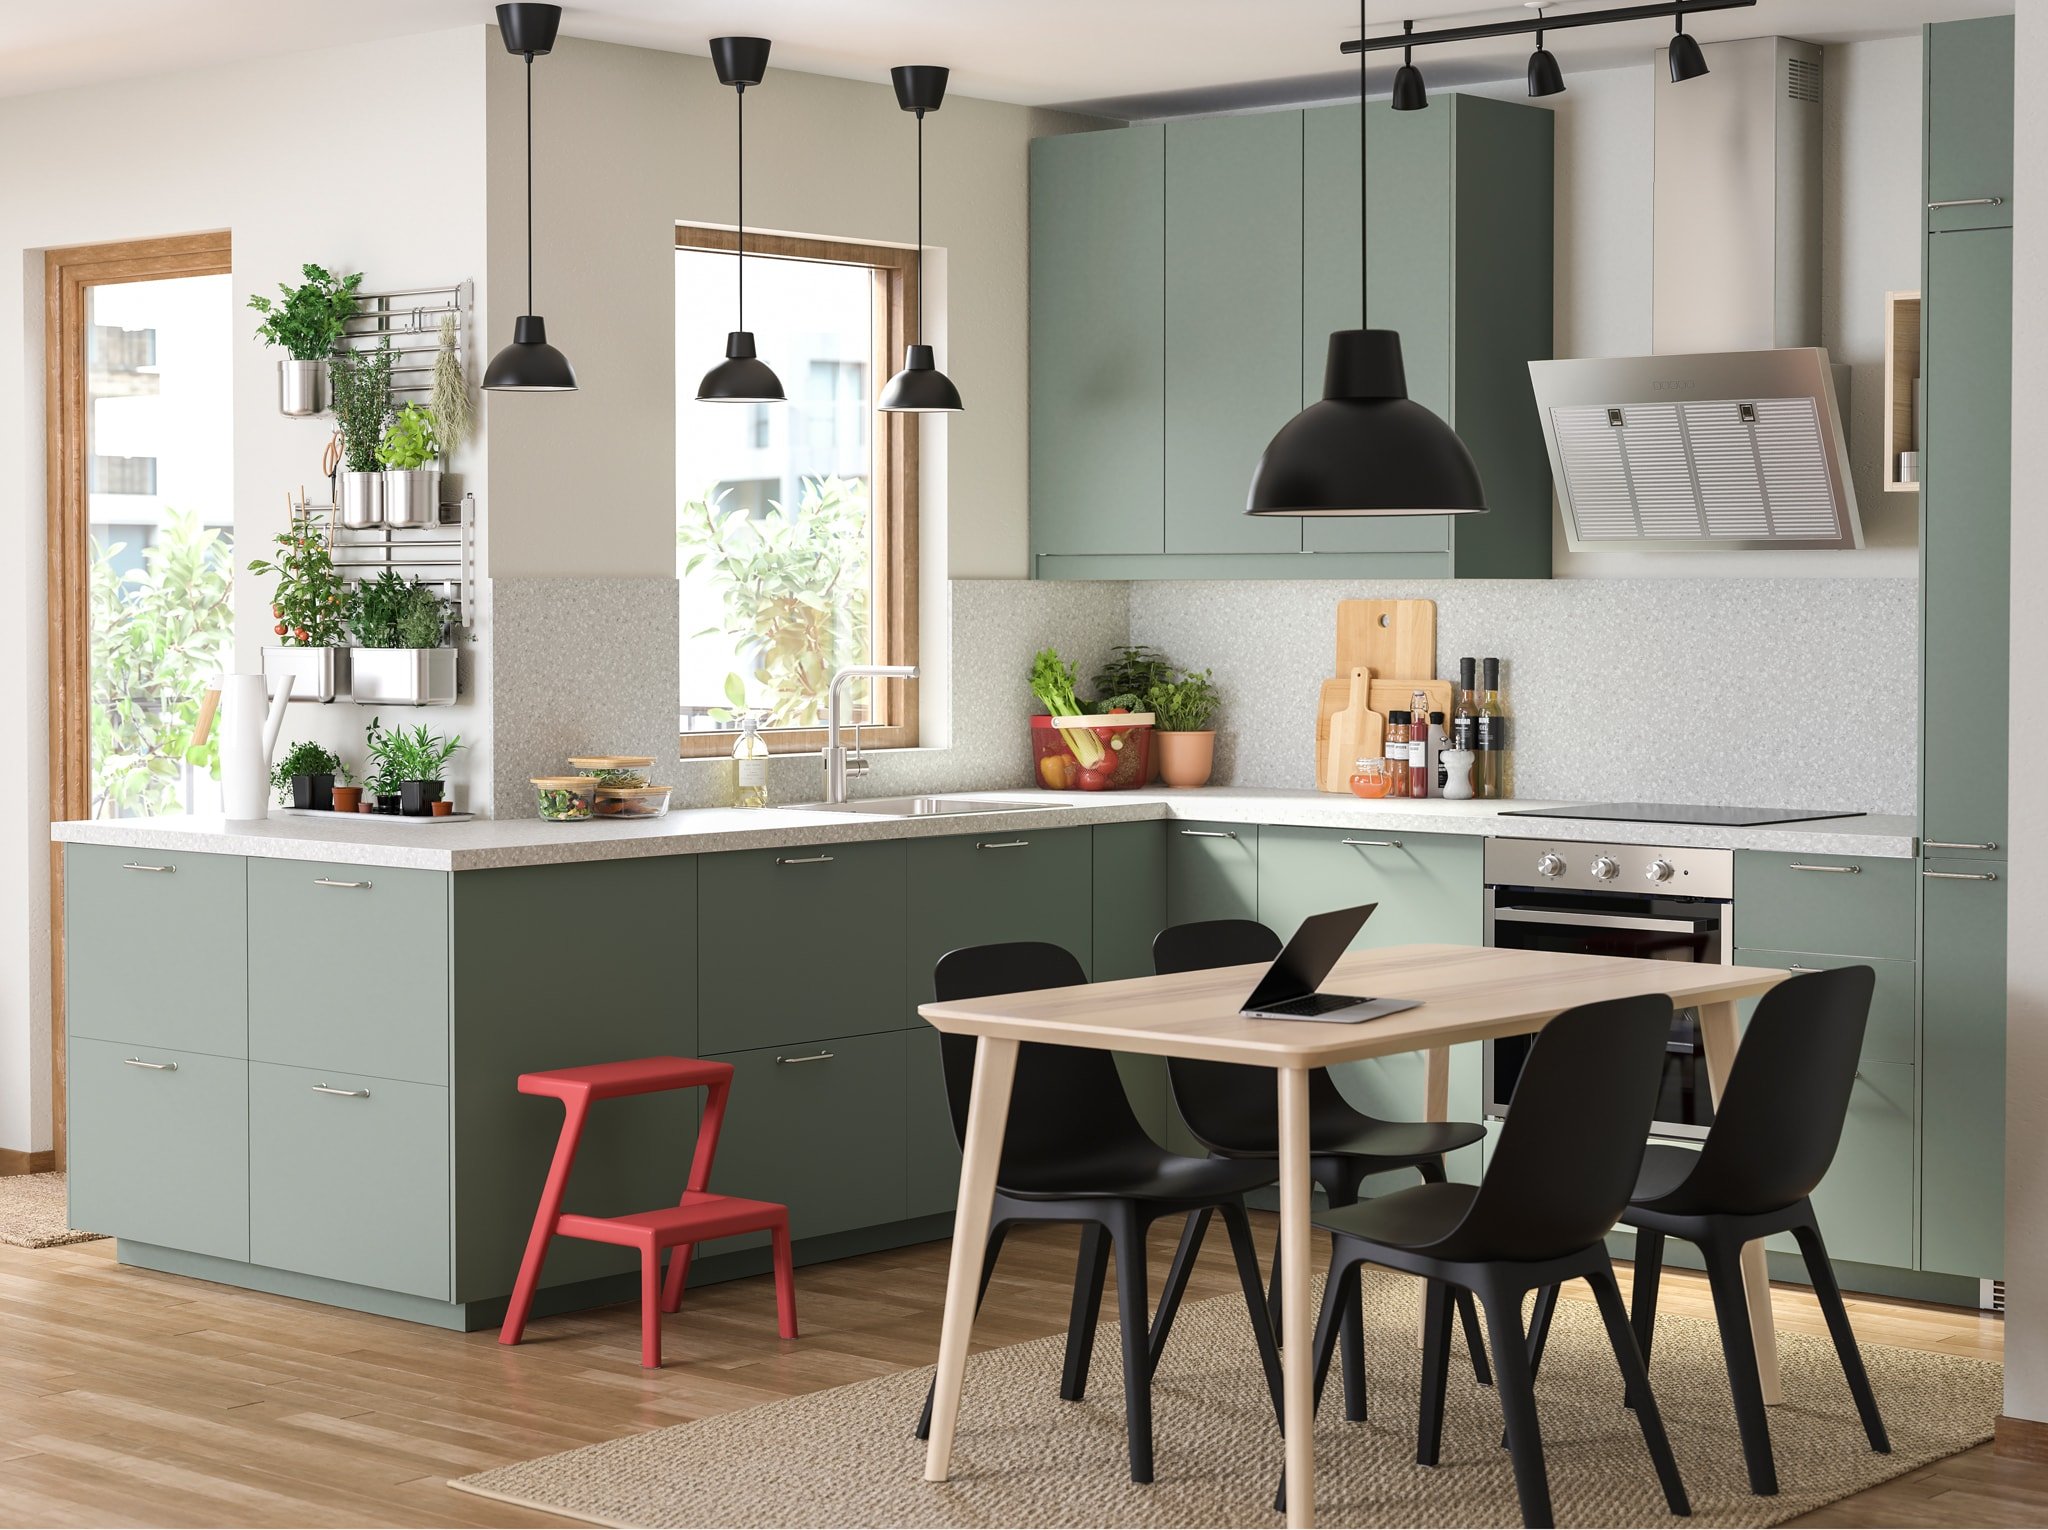 A grey-green kitchen, a wooden dining table, black chairs, a black pendant lamp and lots of herbs that hang on rails.